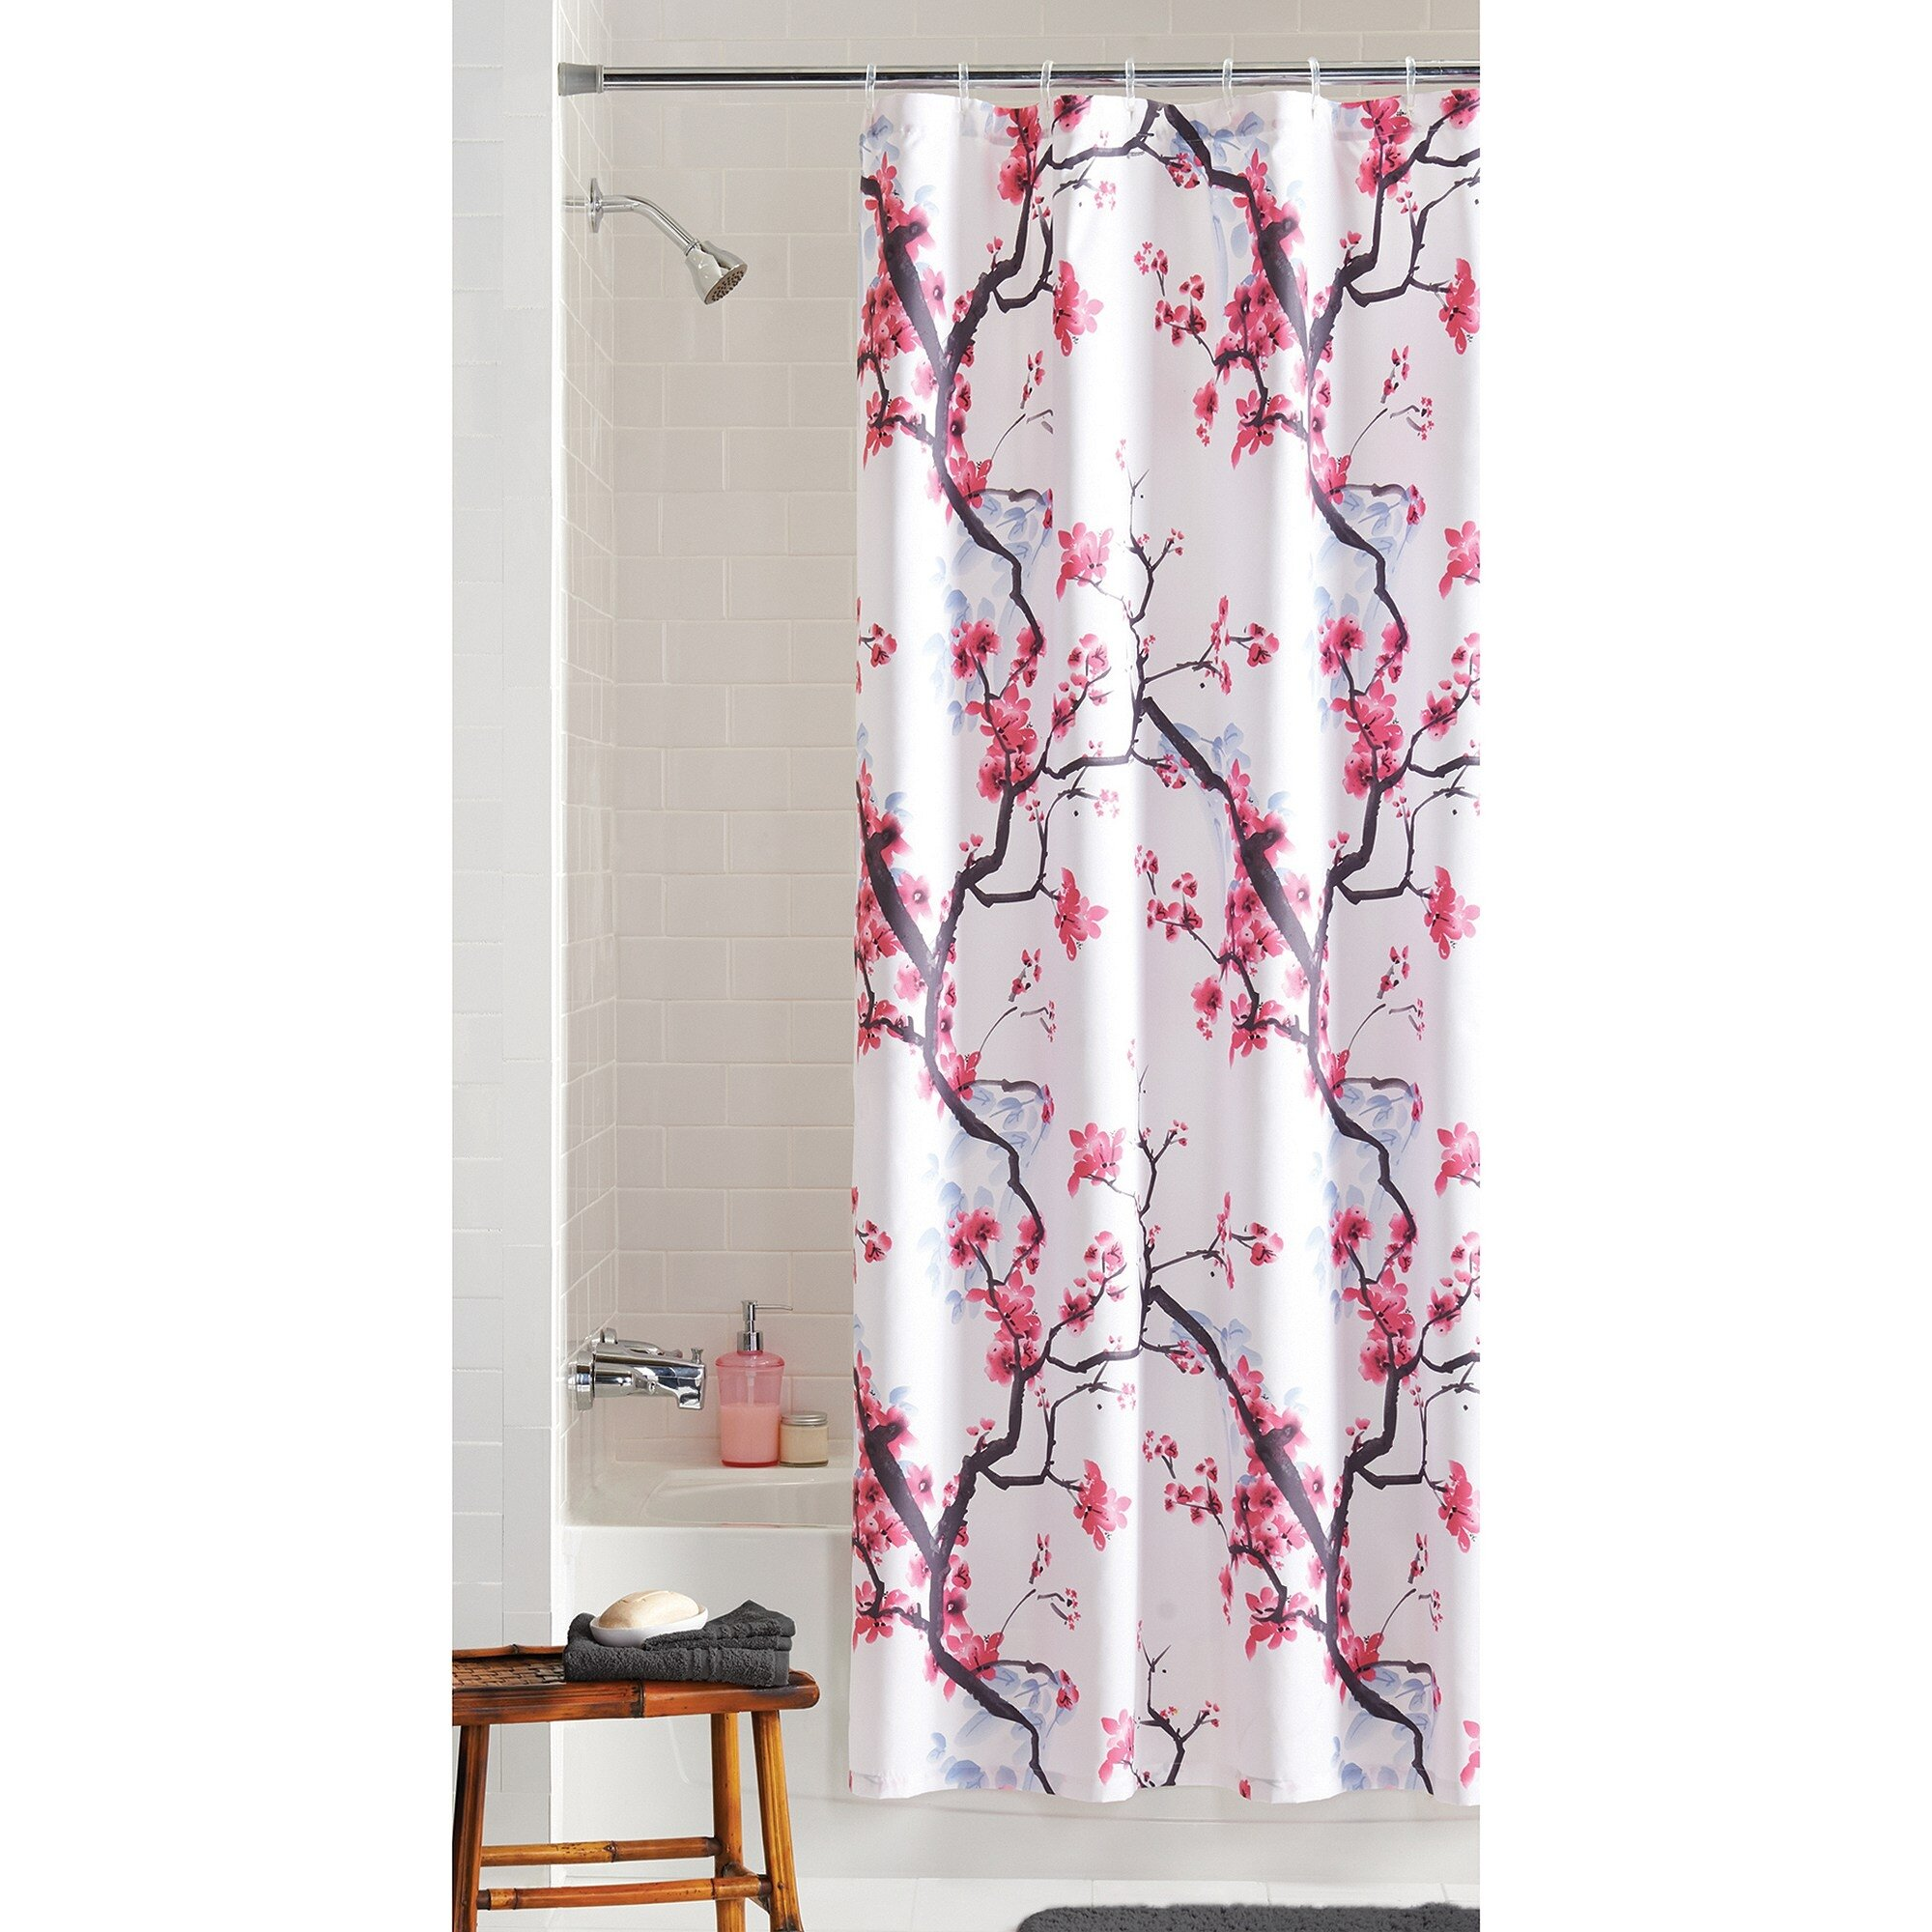 Curtain Walmart Shower Curtain For Cute Your Bathroom